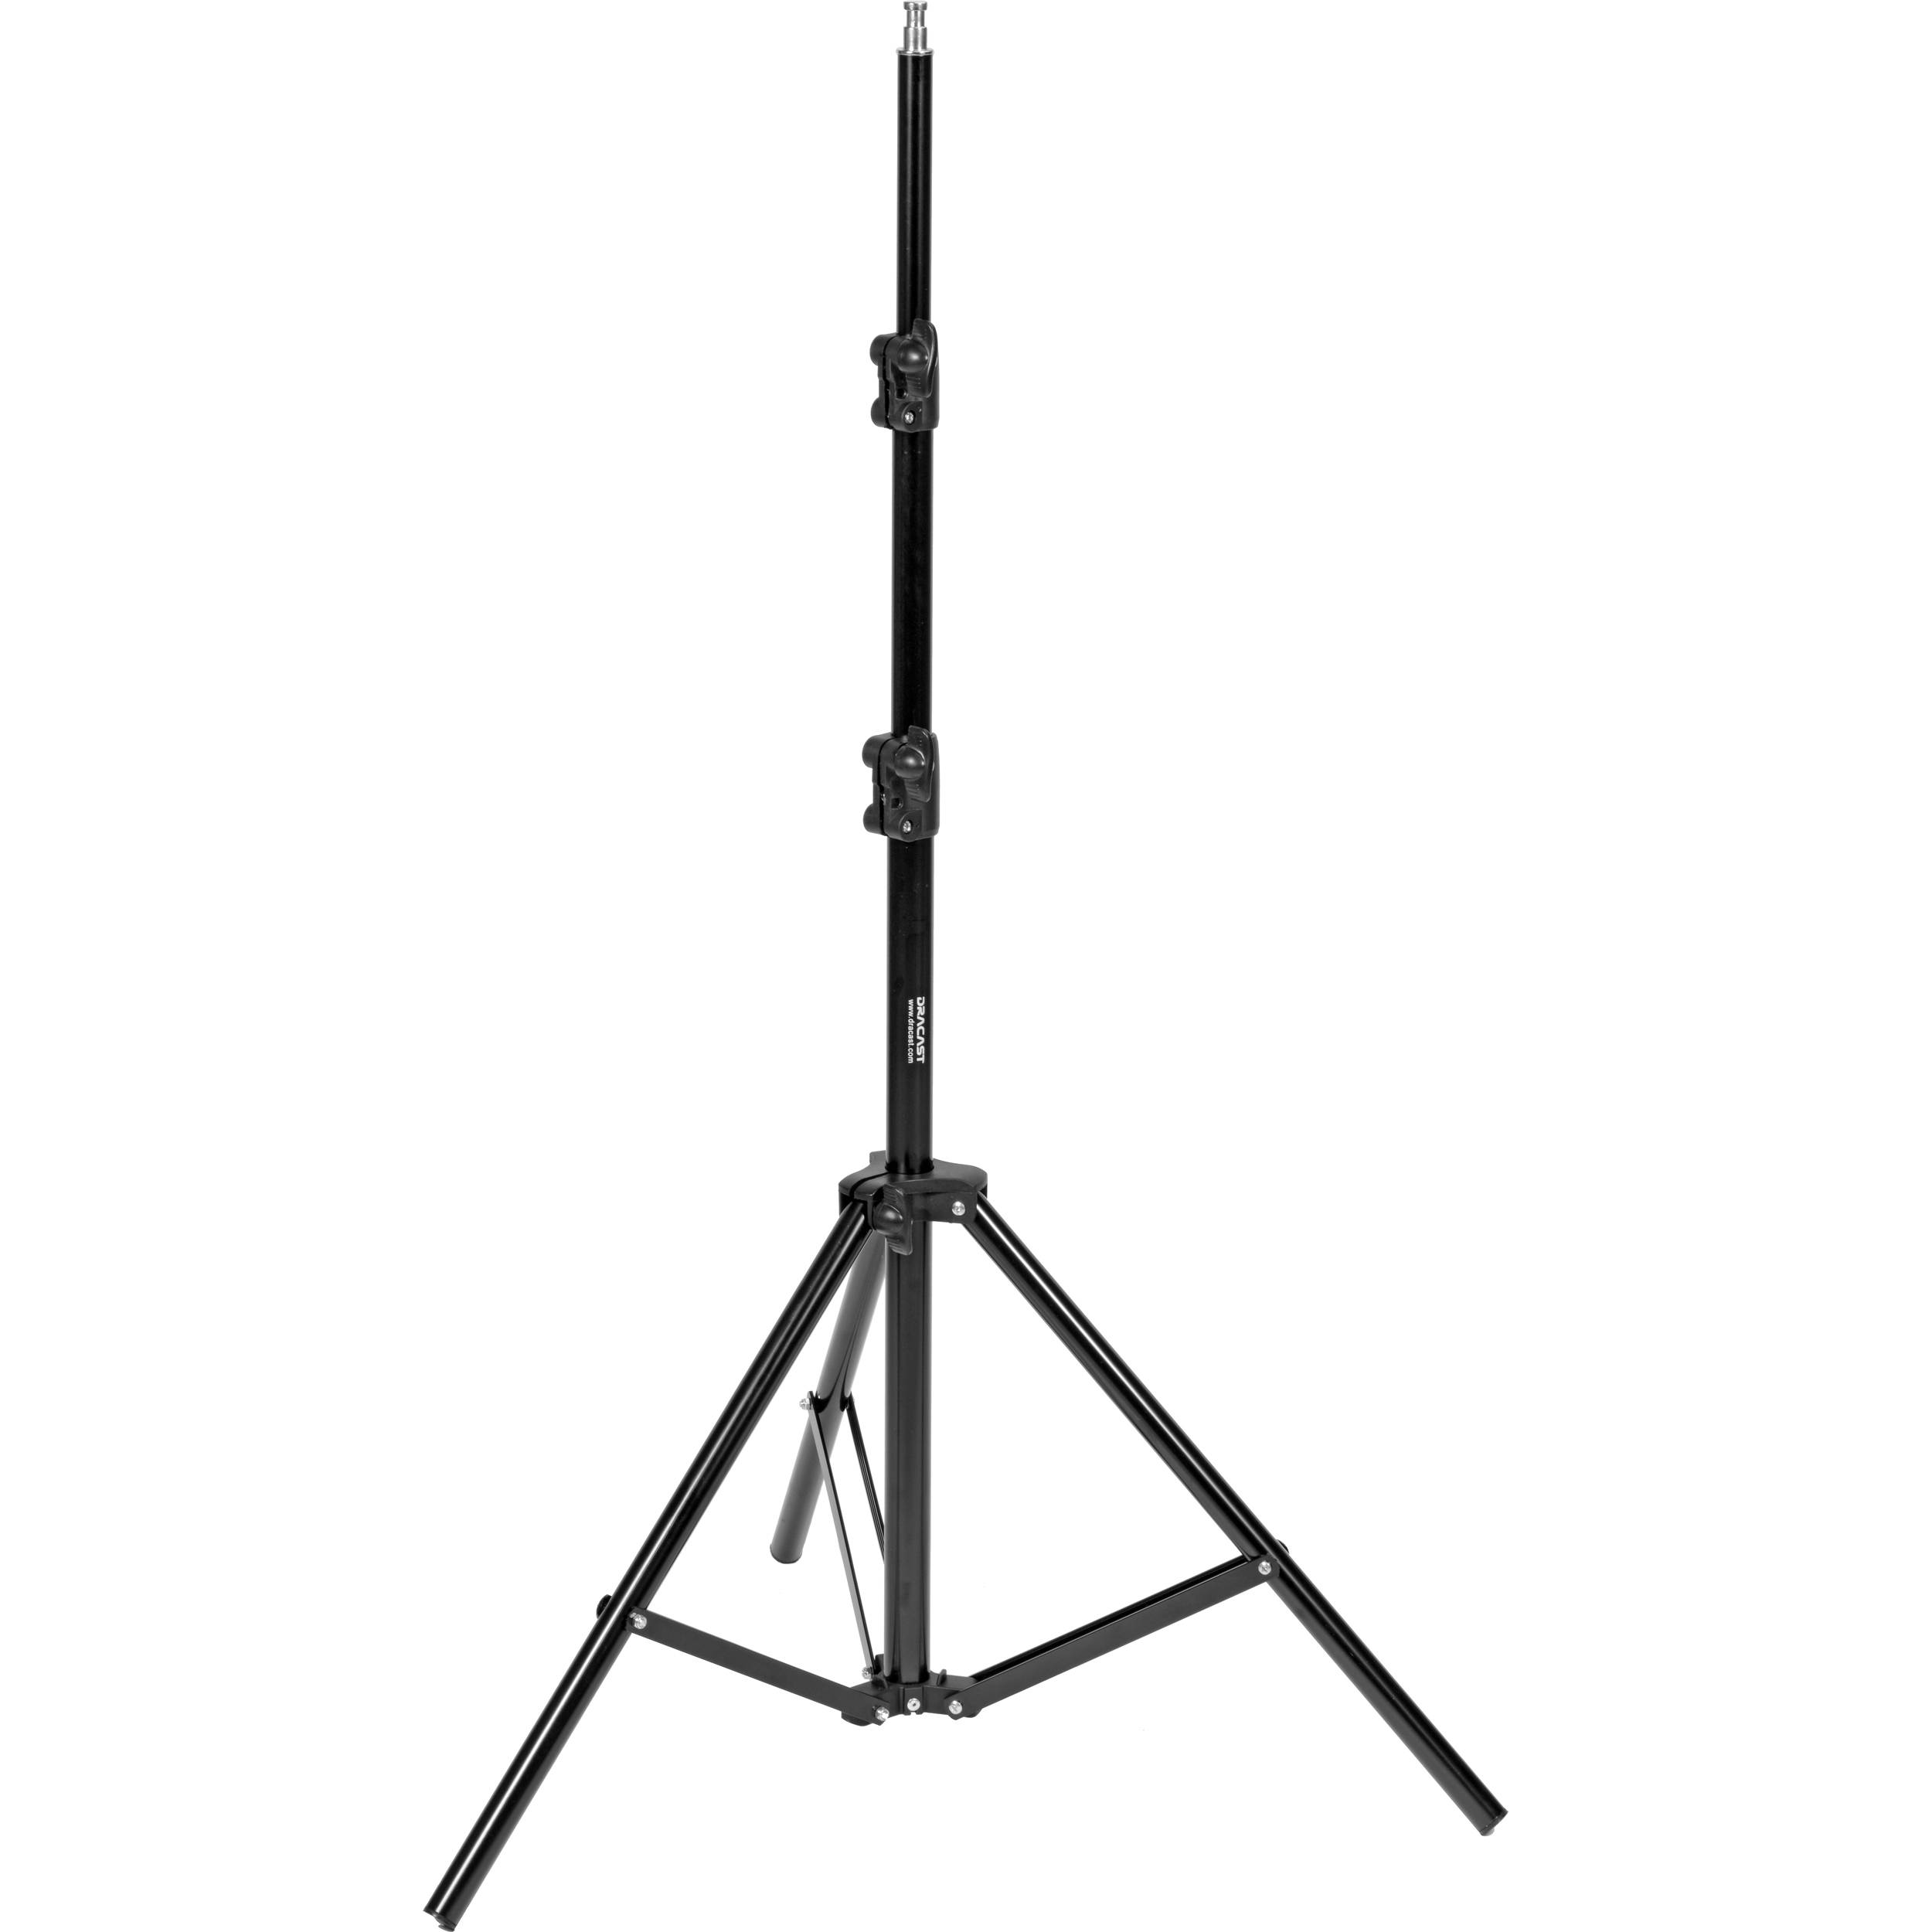 Dracast DLS805 SpringCushioned Light Stand 6 DR